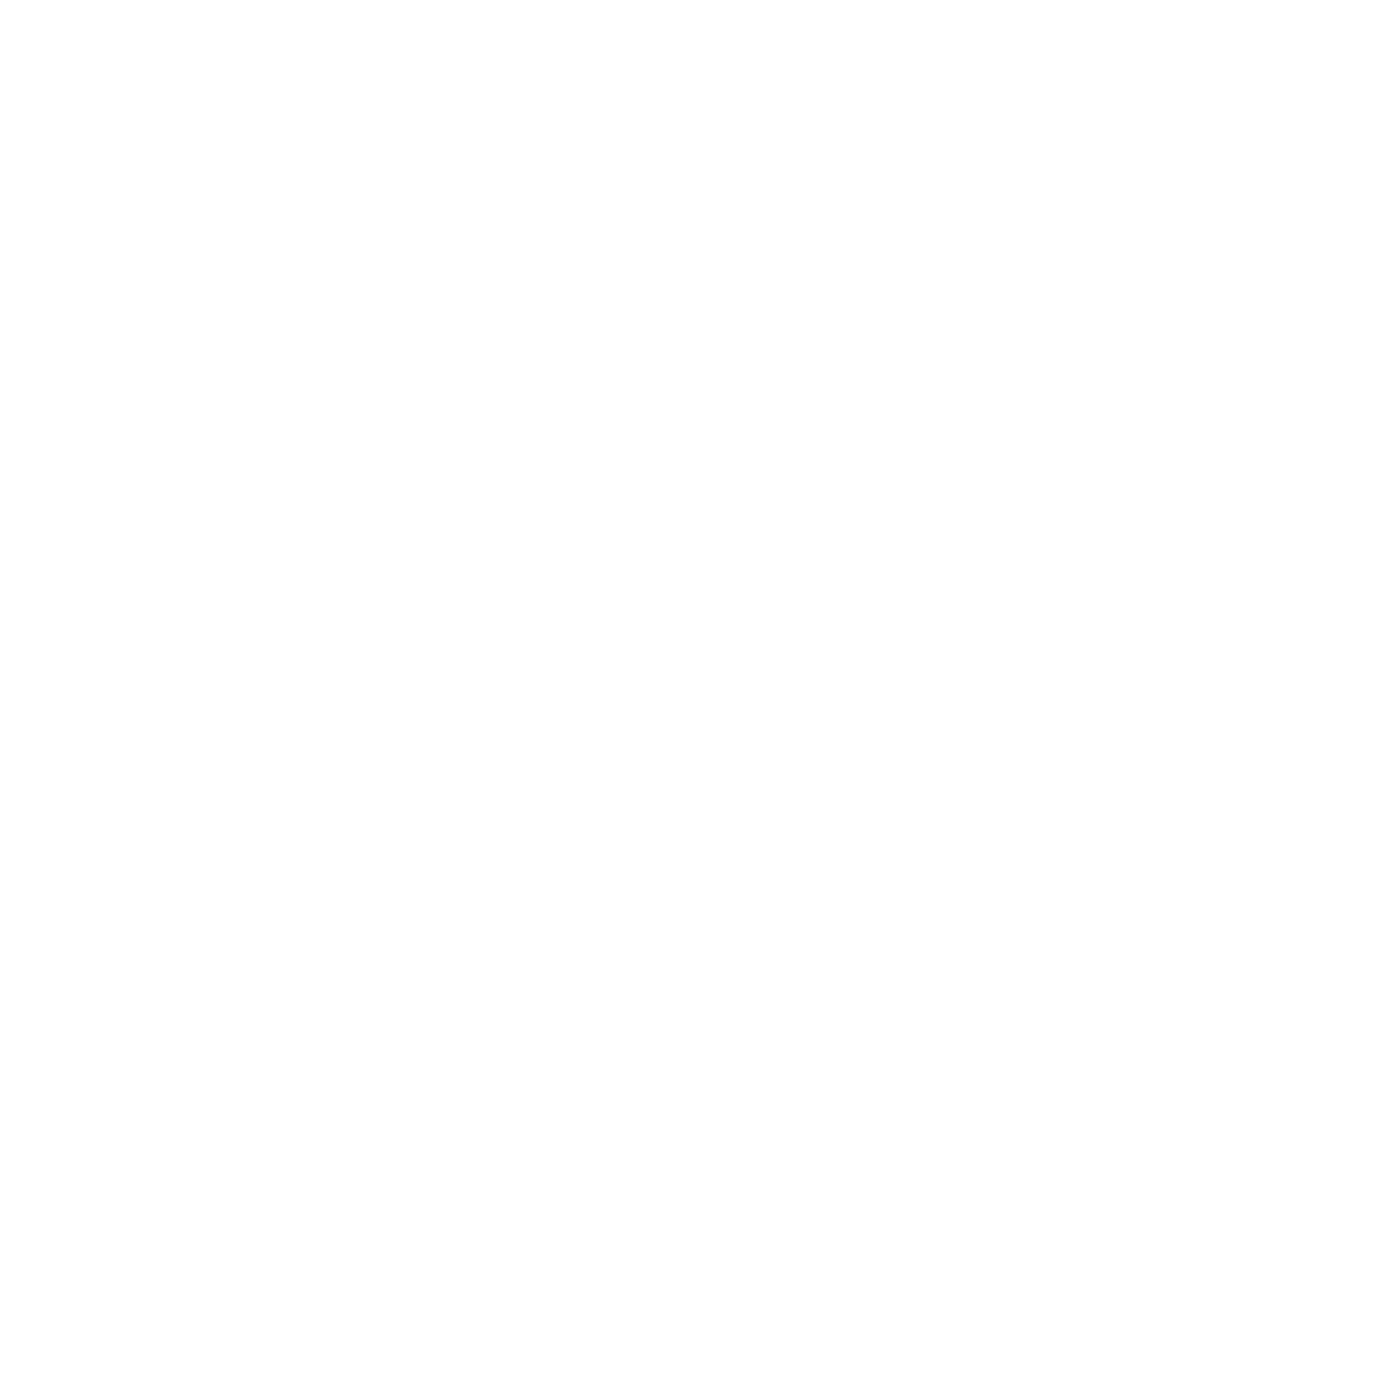 PiaLind Foto Business